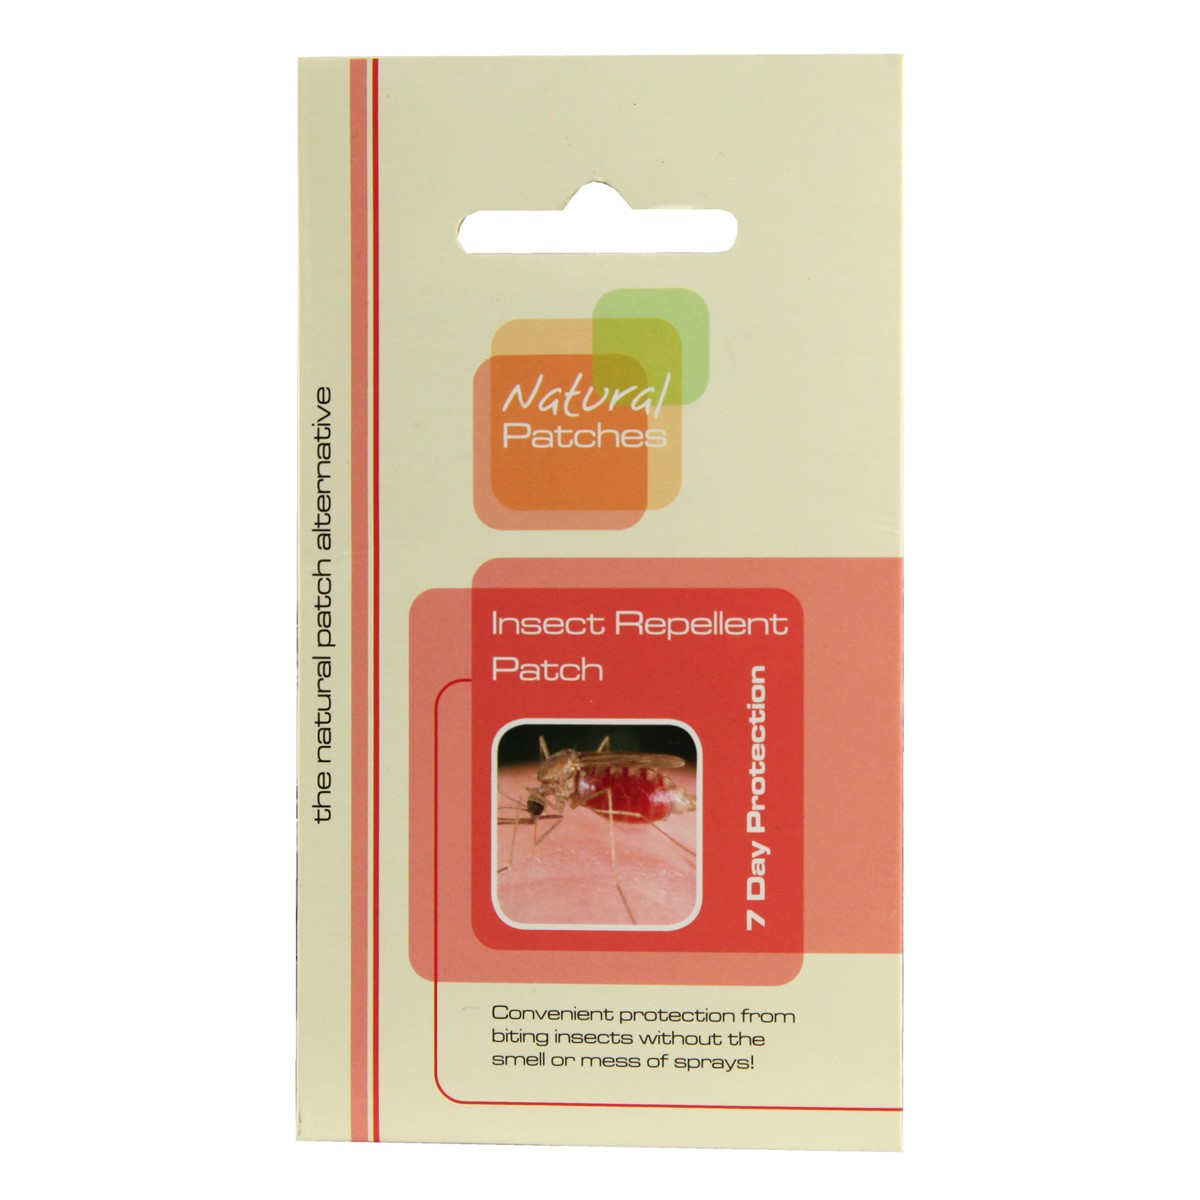 Natural Patches Insect Repellent Patch